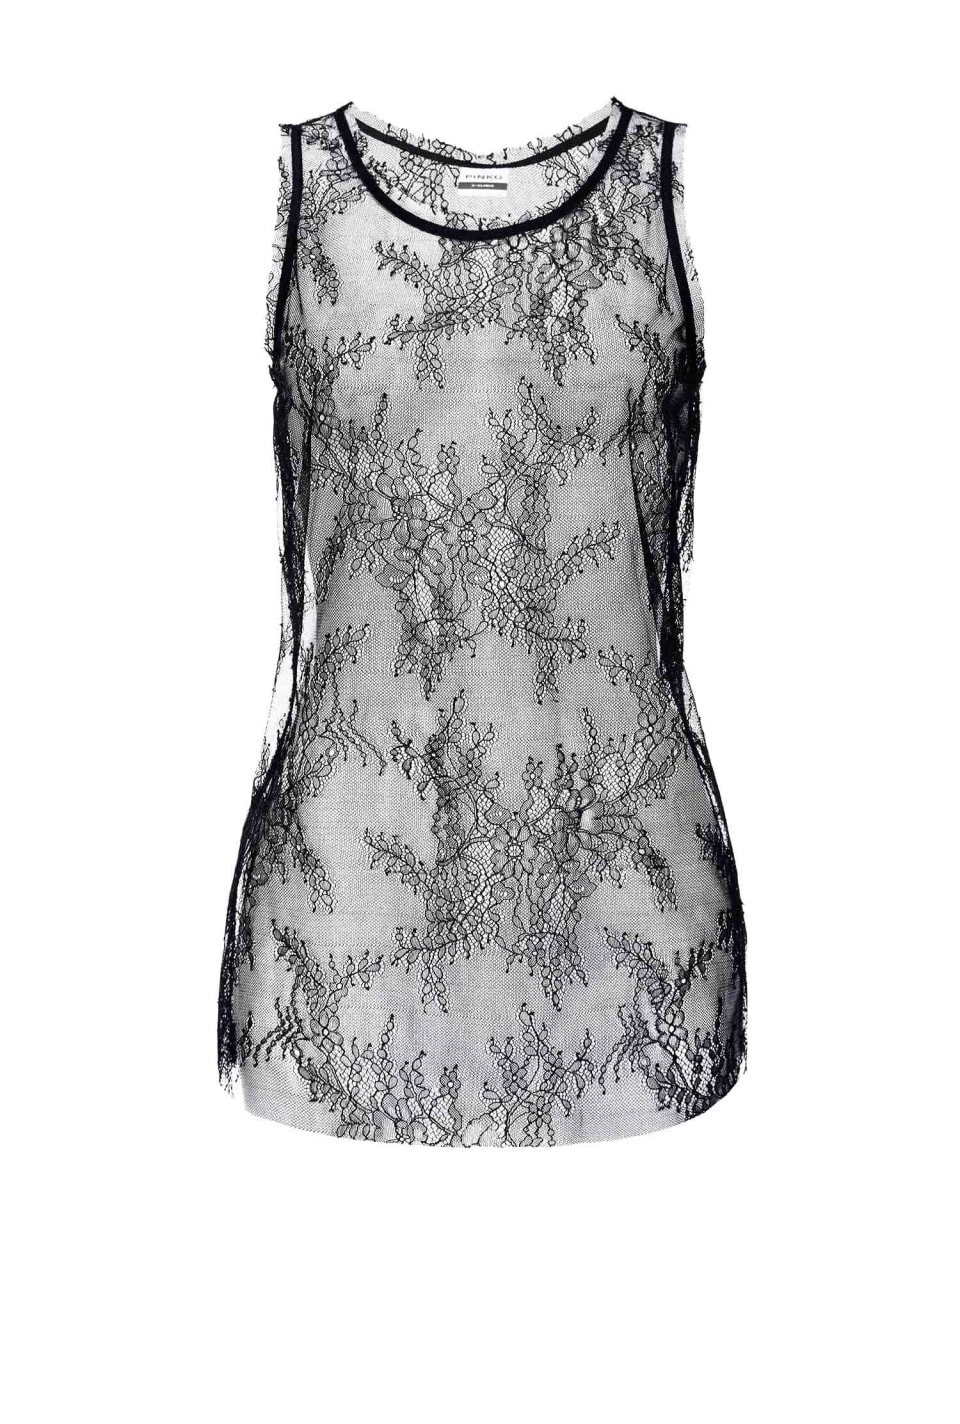 Valenciennes lace top